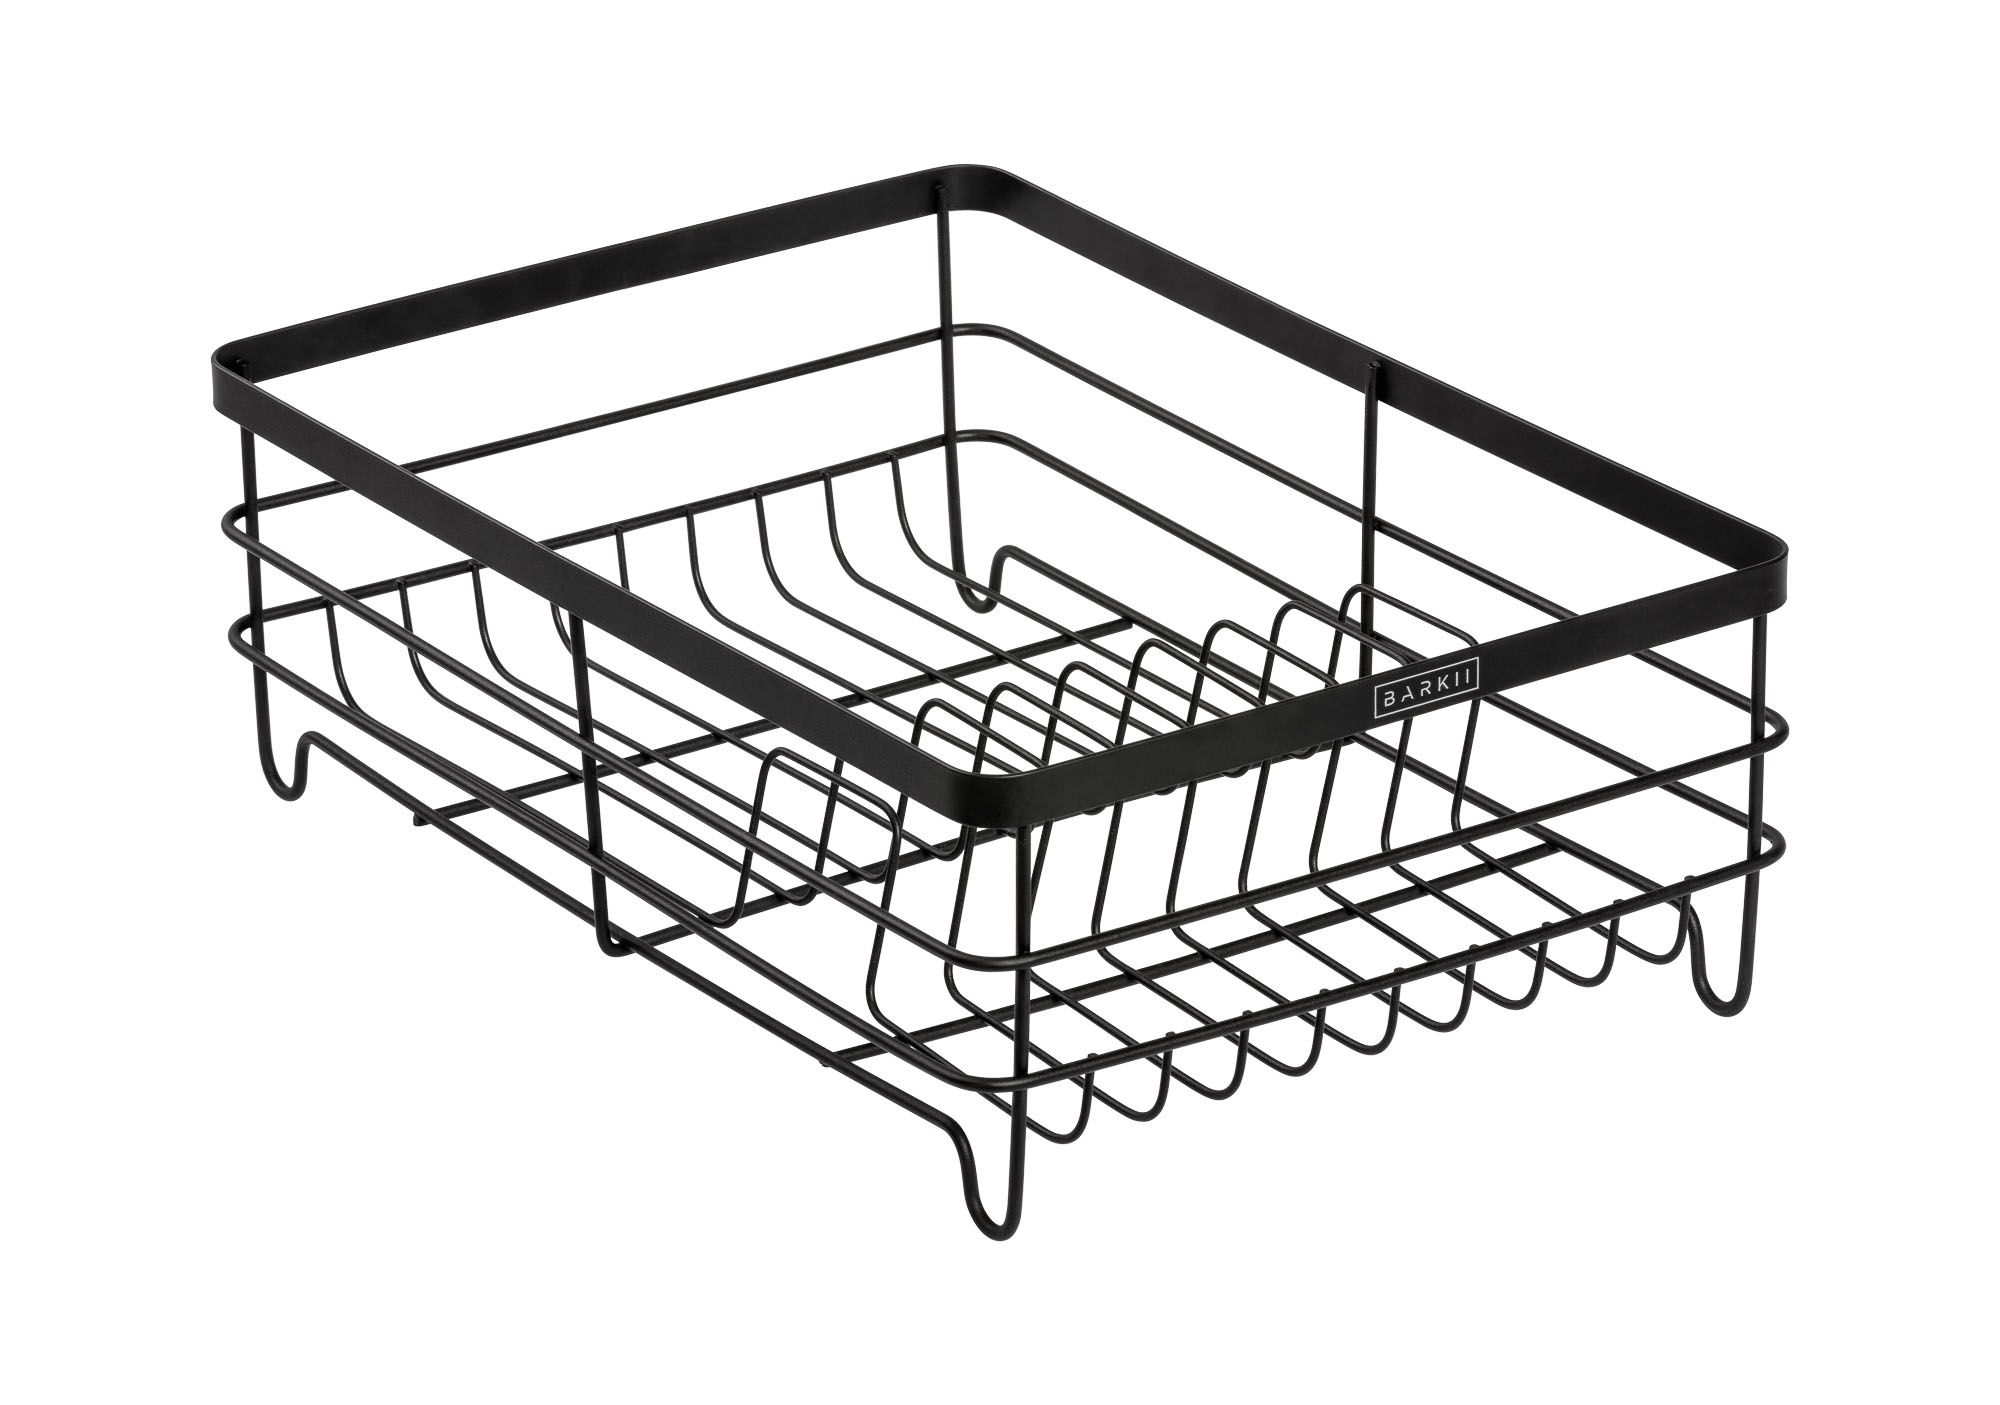 Dish Rack Barkii Rack only 45 degrees